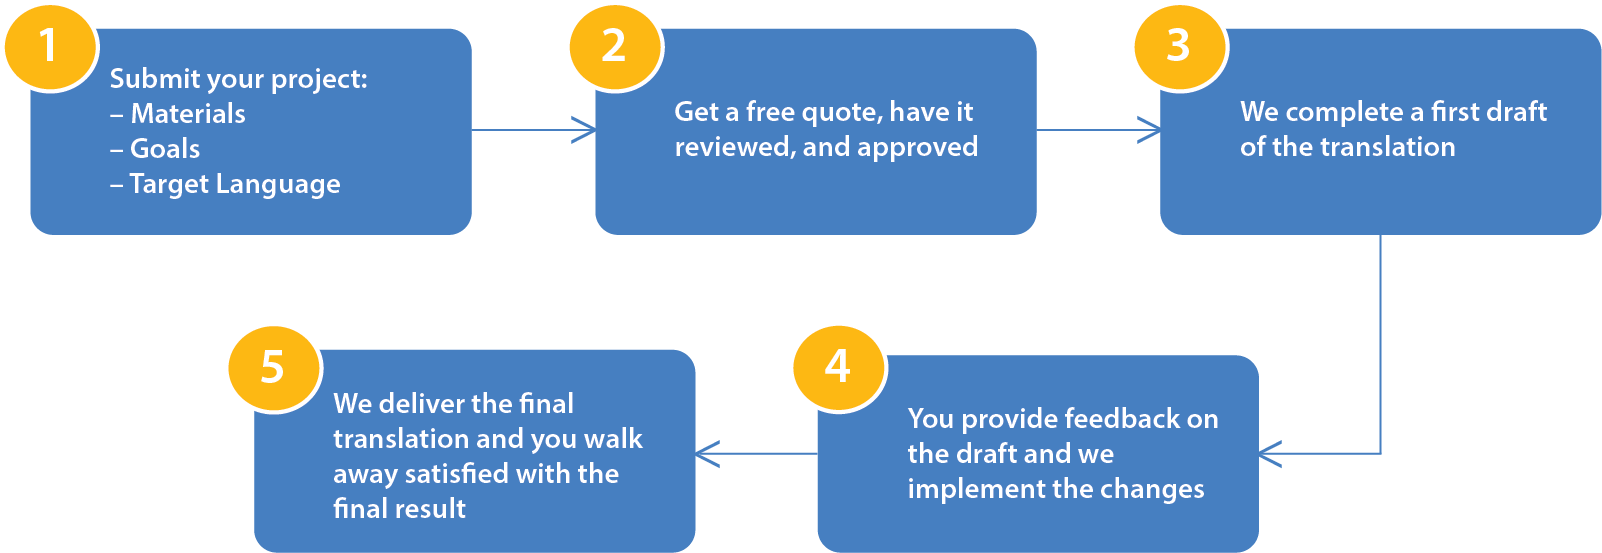 Step-by-step process when working with MOSAIC Translation Services, to find out more, please call 604 254 0469 or email commercial@mosaicbc.org for commercial services and personal@mosaicbc.org for personal services